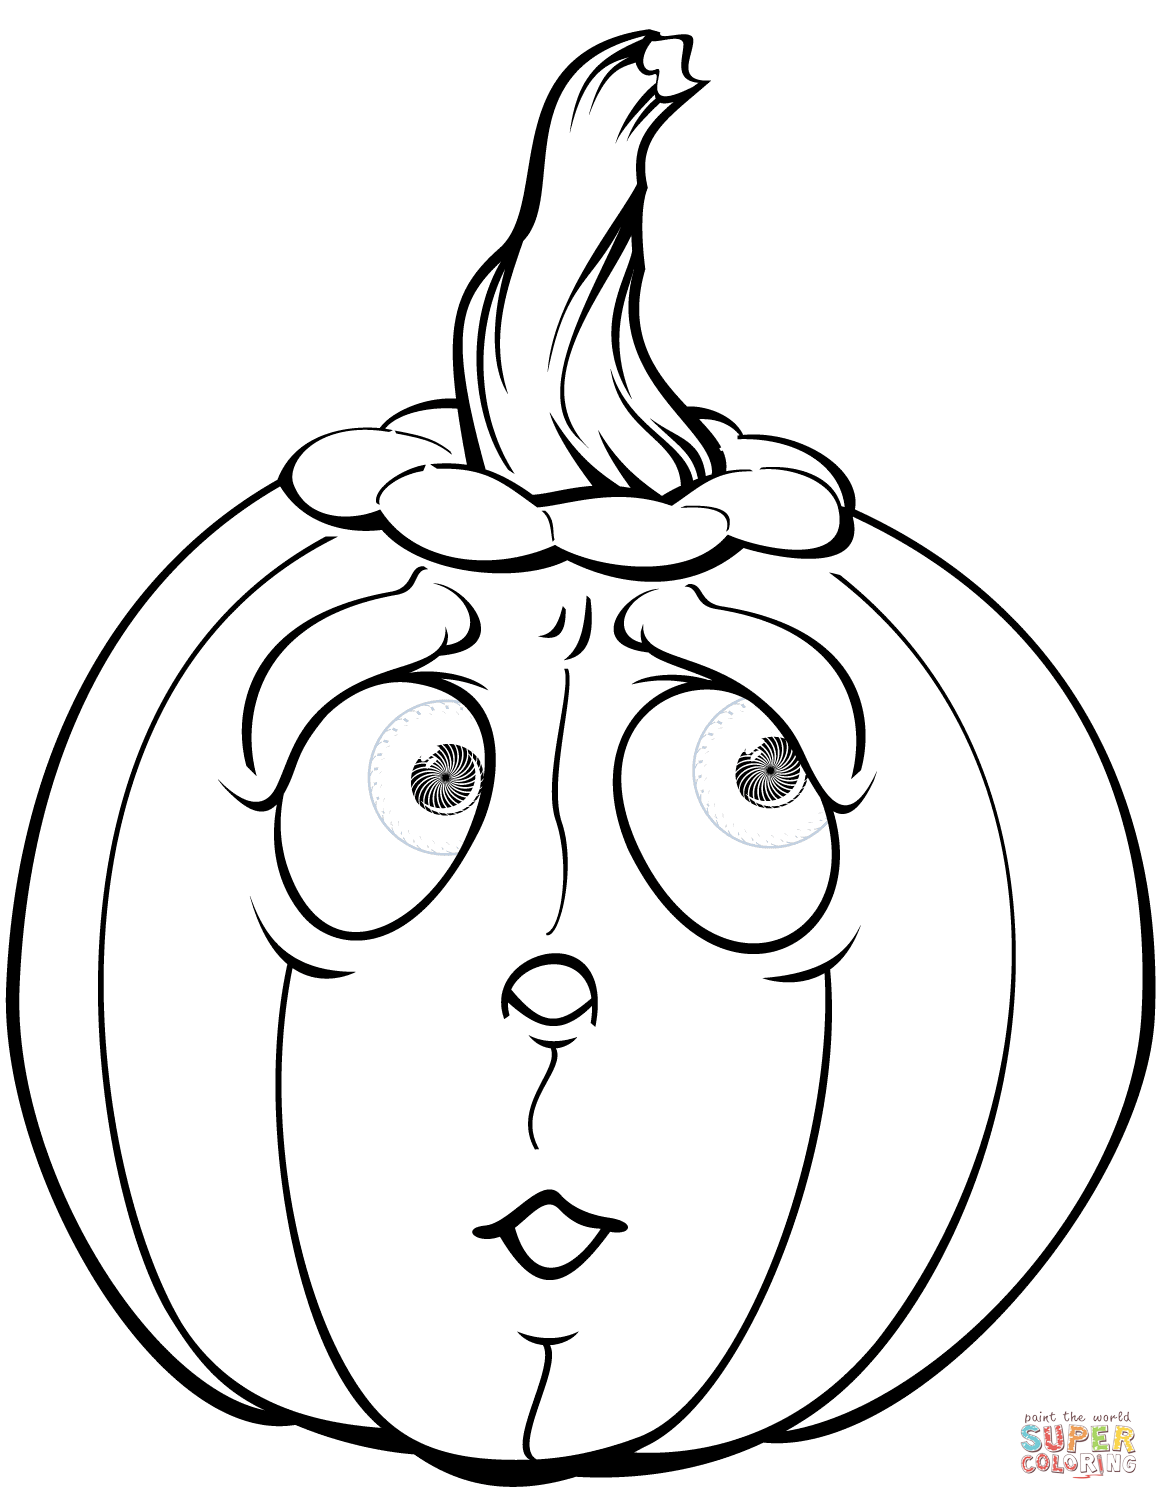 pumpkin coloring pages free printable free printable pumpkin coloring pages for kids free coloring printable pumpkin pages